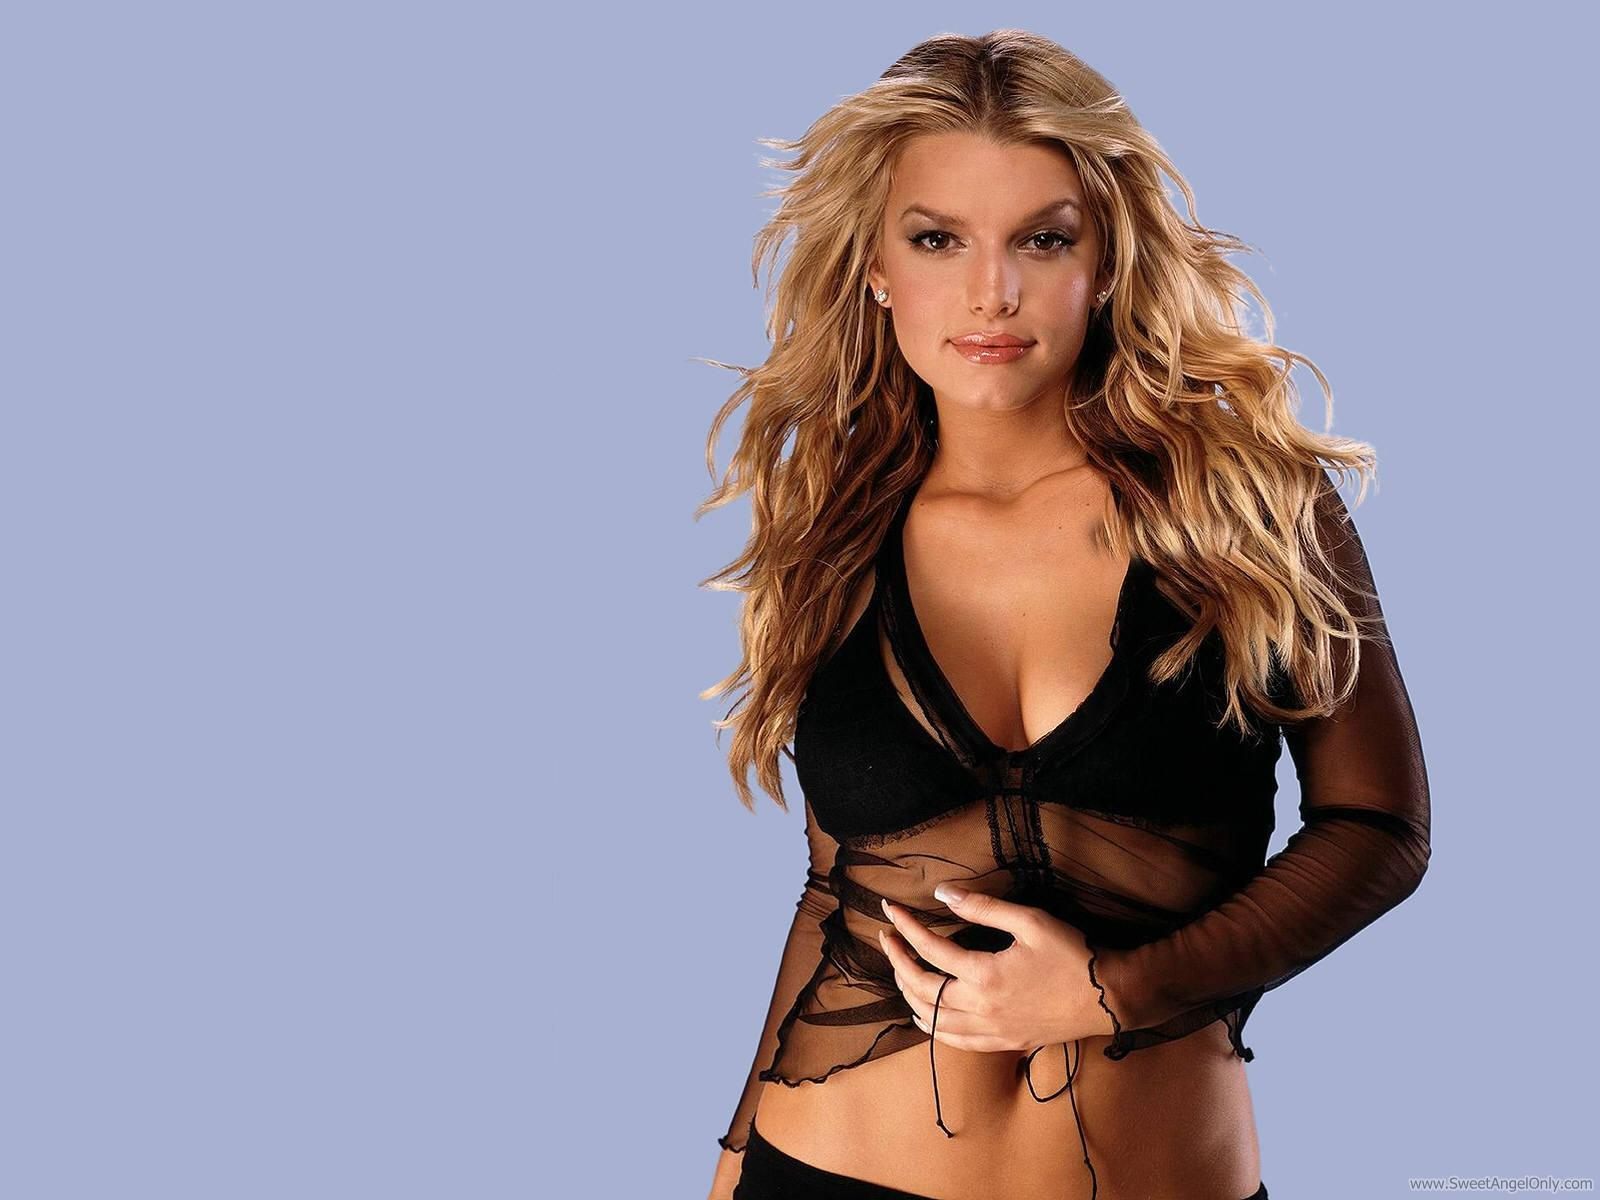 American Singer Jessica Simpson Wallpapers Has Proven